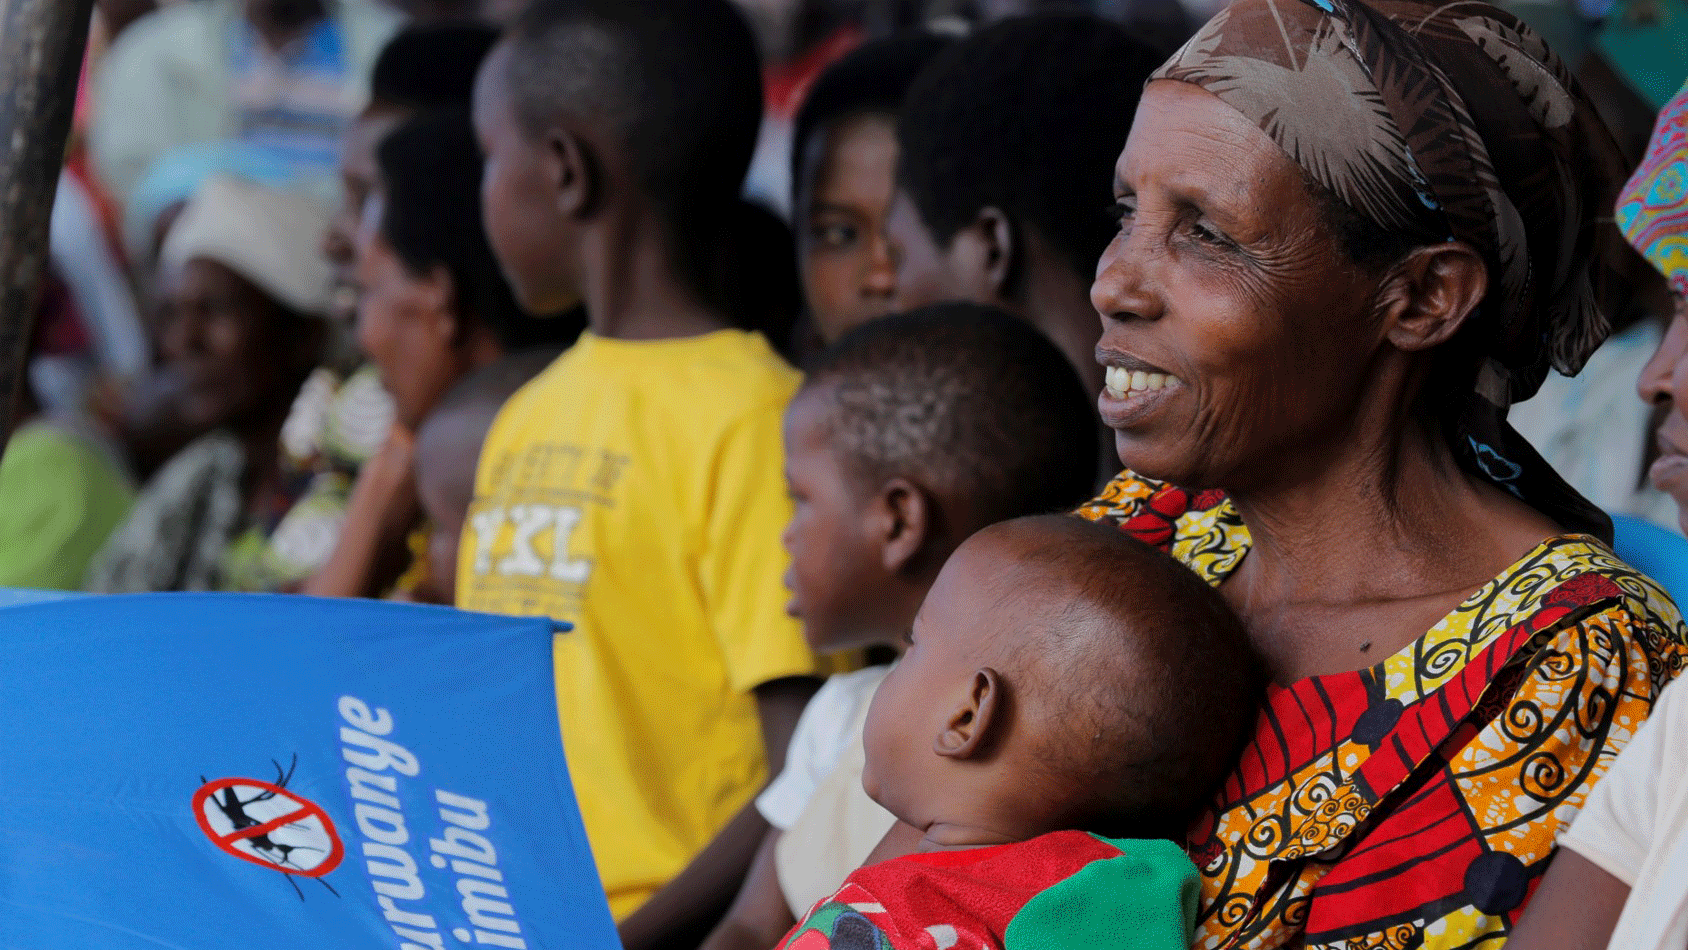 Mother with baby in Rwanda at an educational session on mosquito prevention.